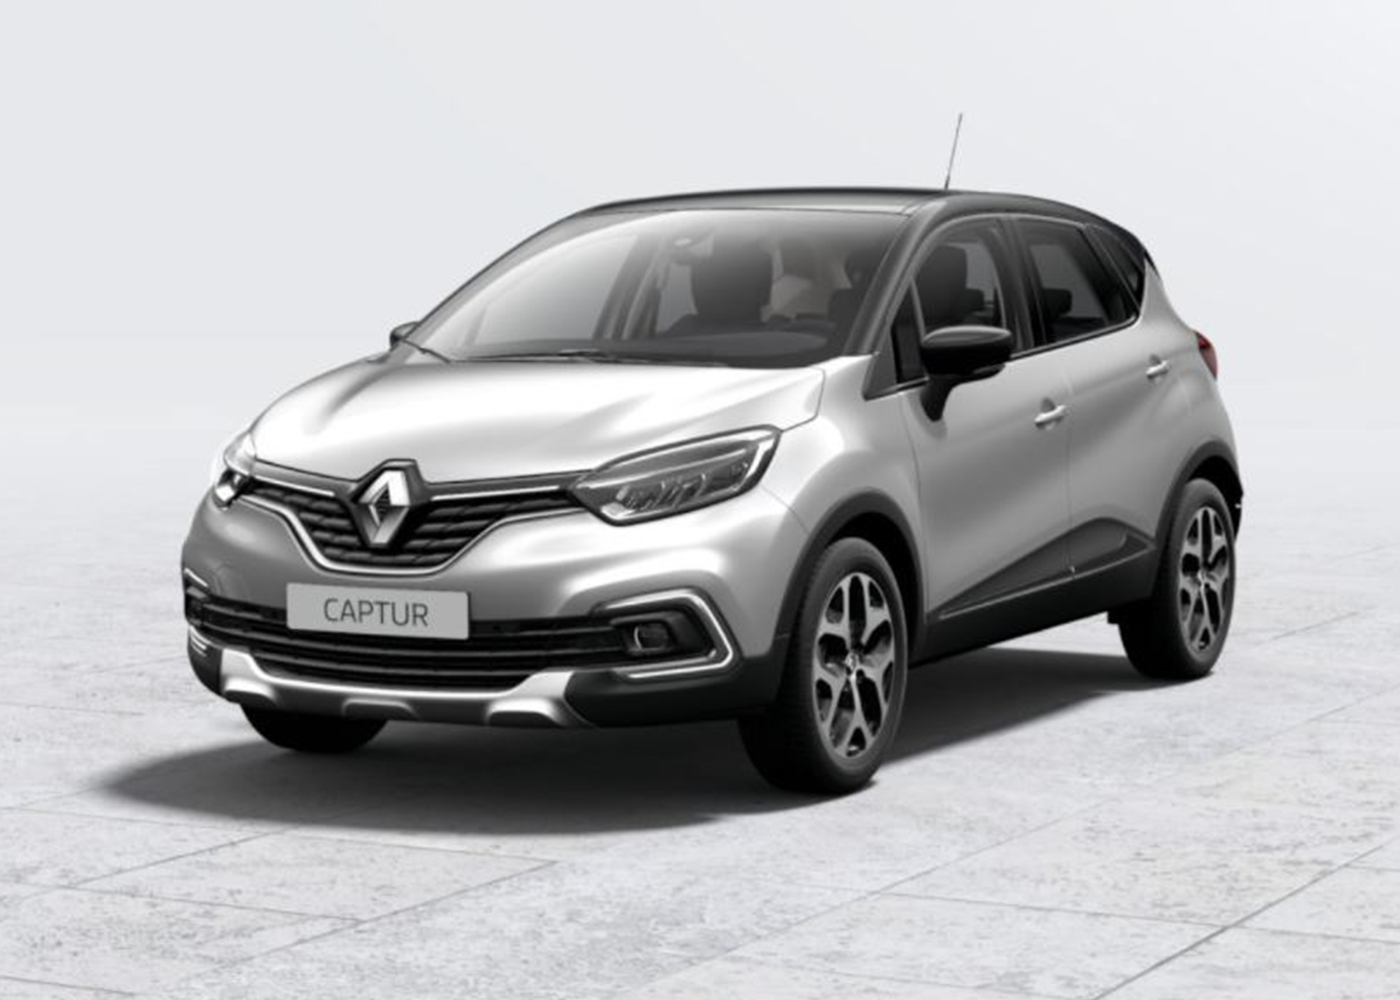 renault captur dci 8v 90 cv start stop energy intens grigio platino km0 a soli 19250 su miacar. Black Bedroom Furniture Sets. Home Design Ideas